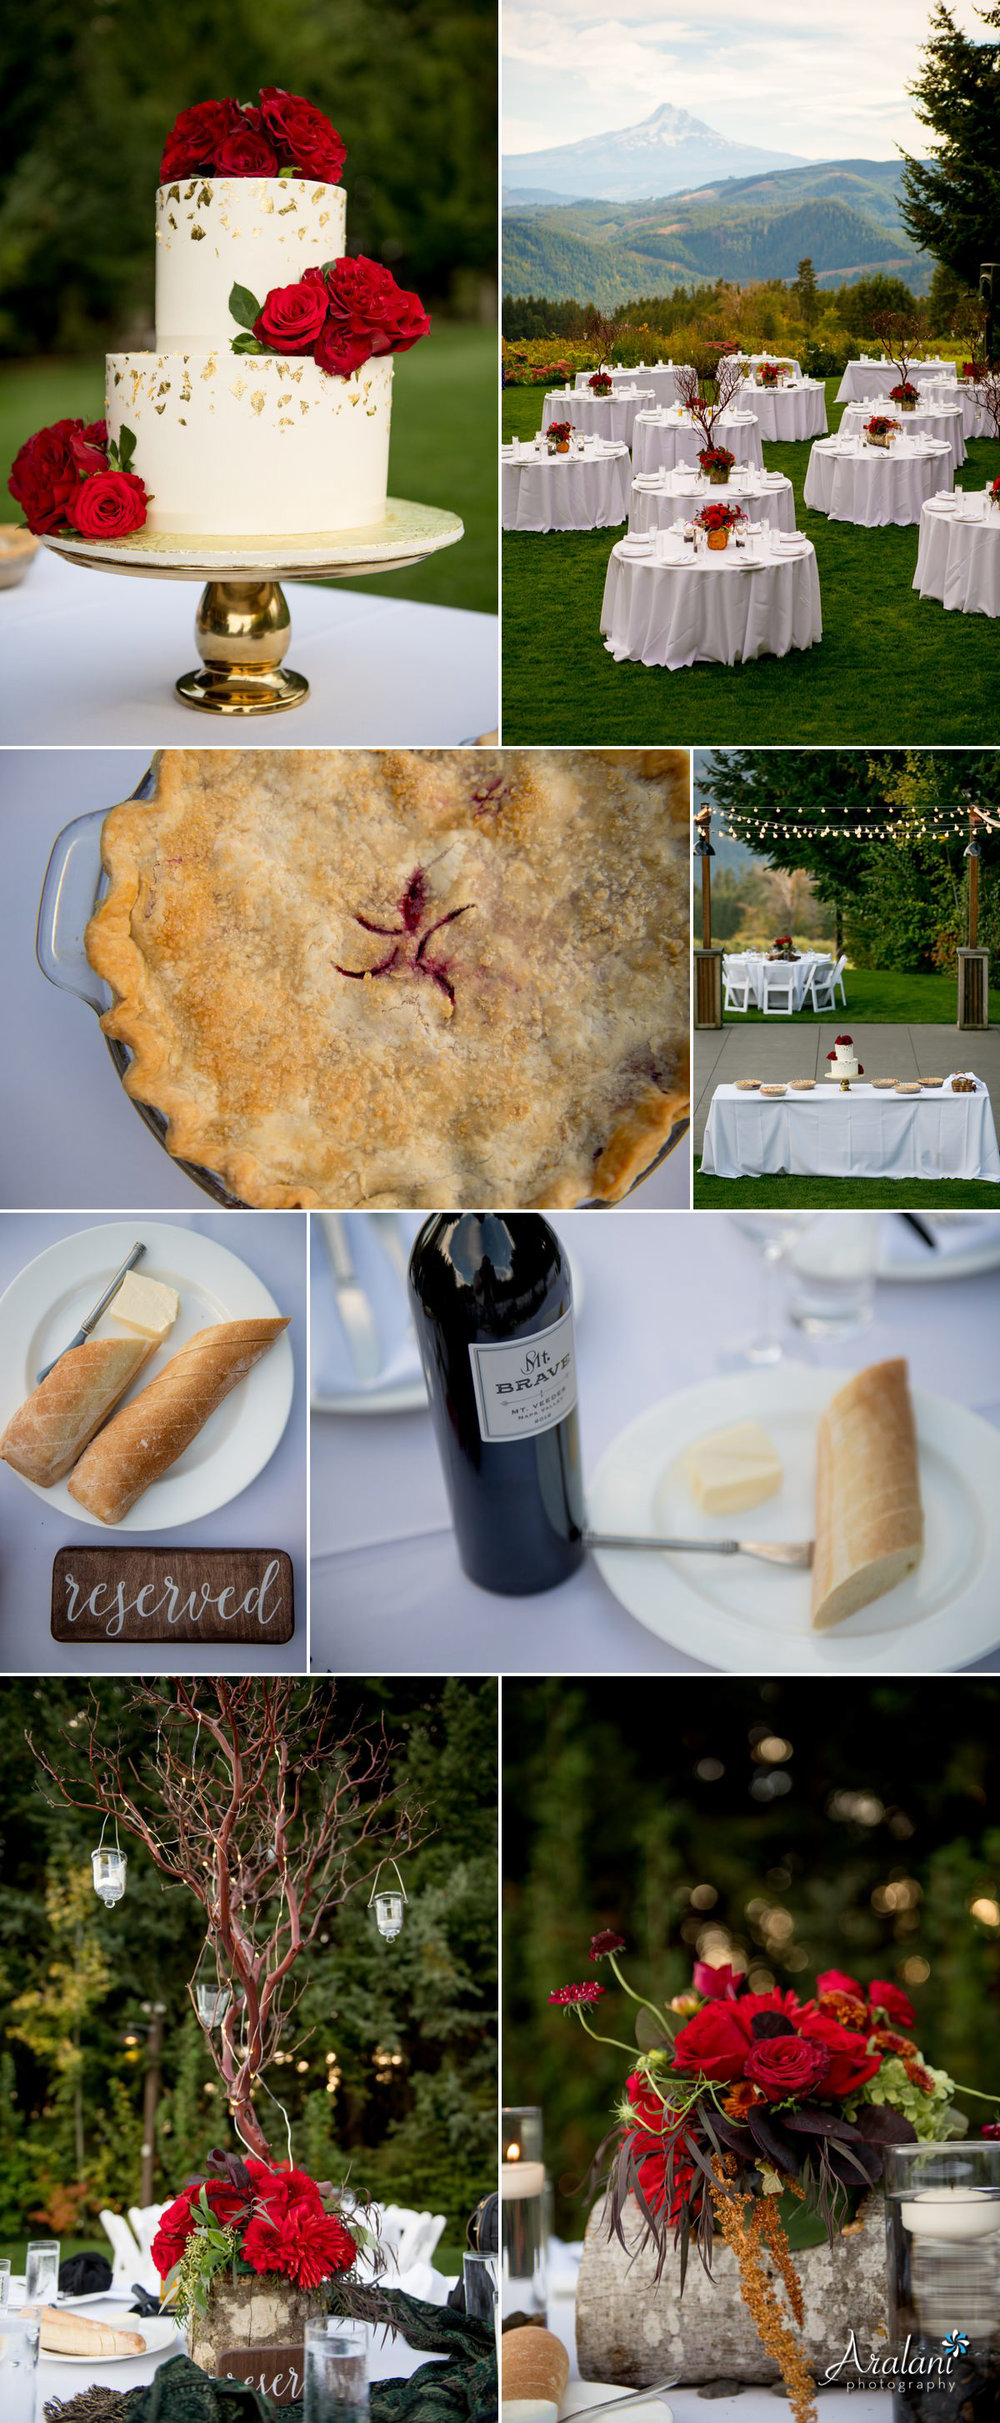 Gorge_Crest_Vineyard_Wedding030.jpg